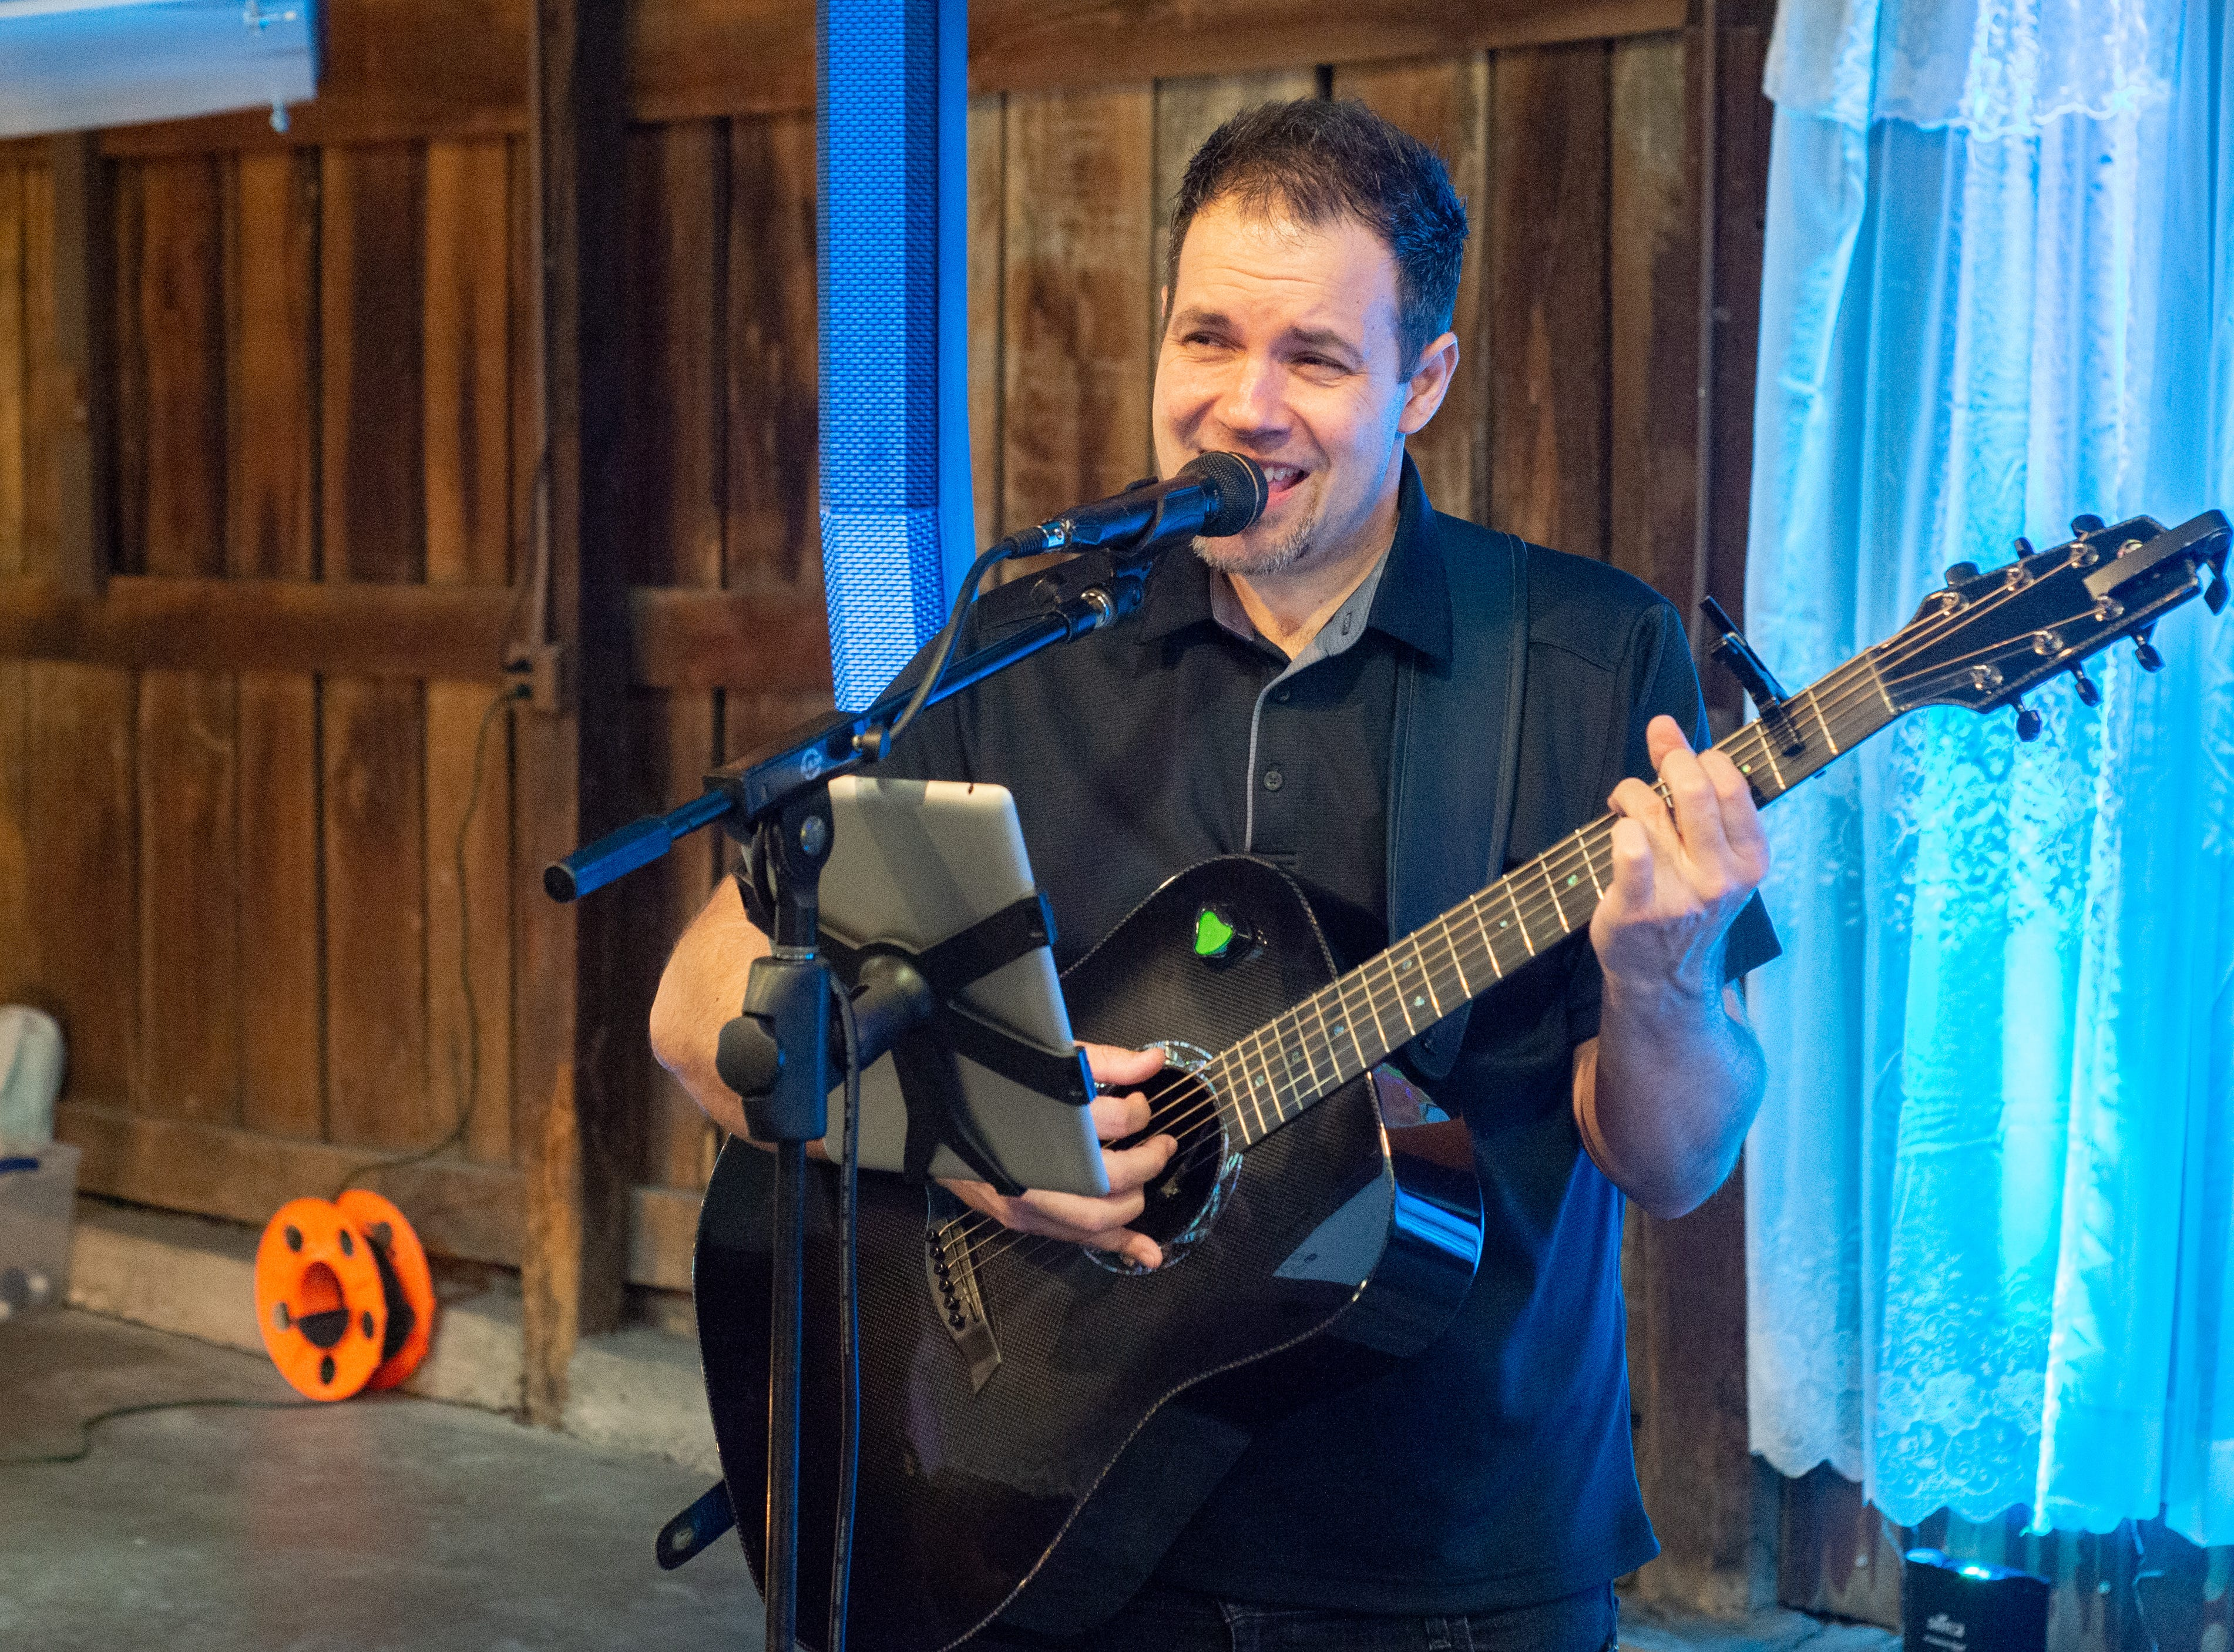 Live music filled the air during the Sumner County Bridal Show at Epic Event Center in Gallatin on Sunday, Jan. 27.